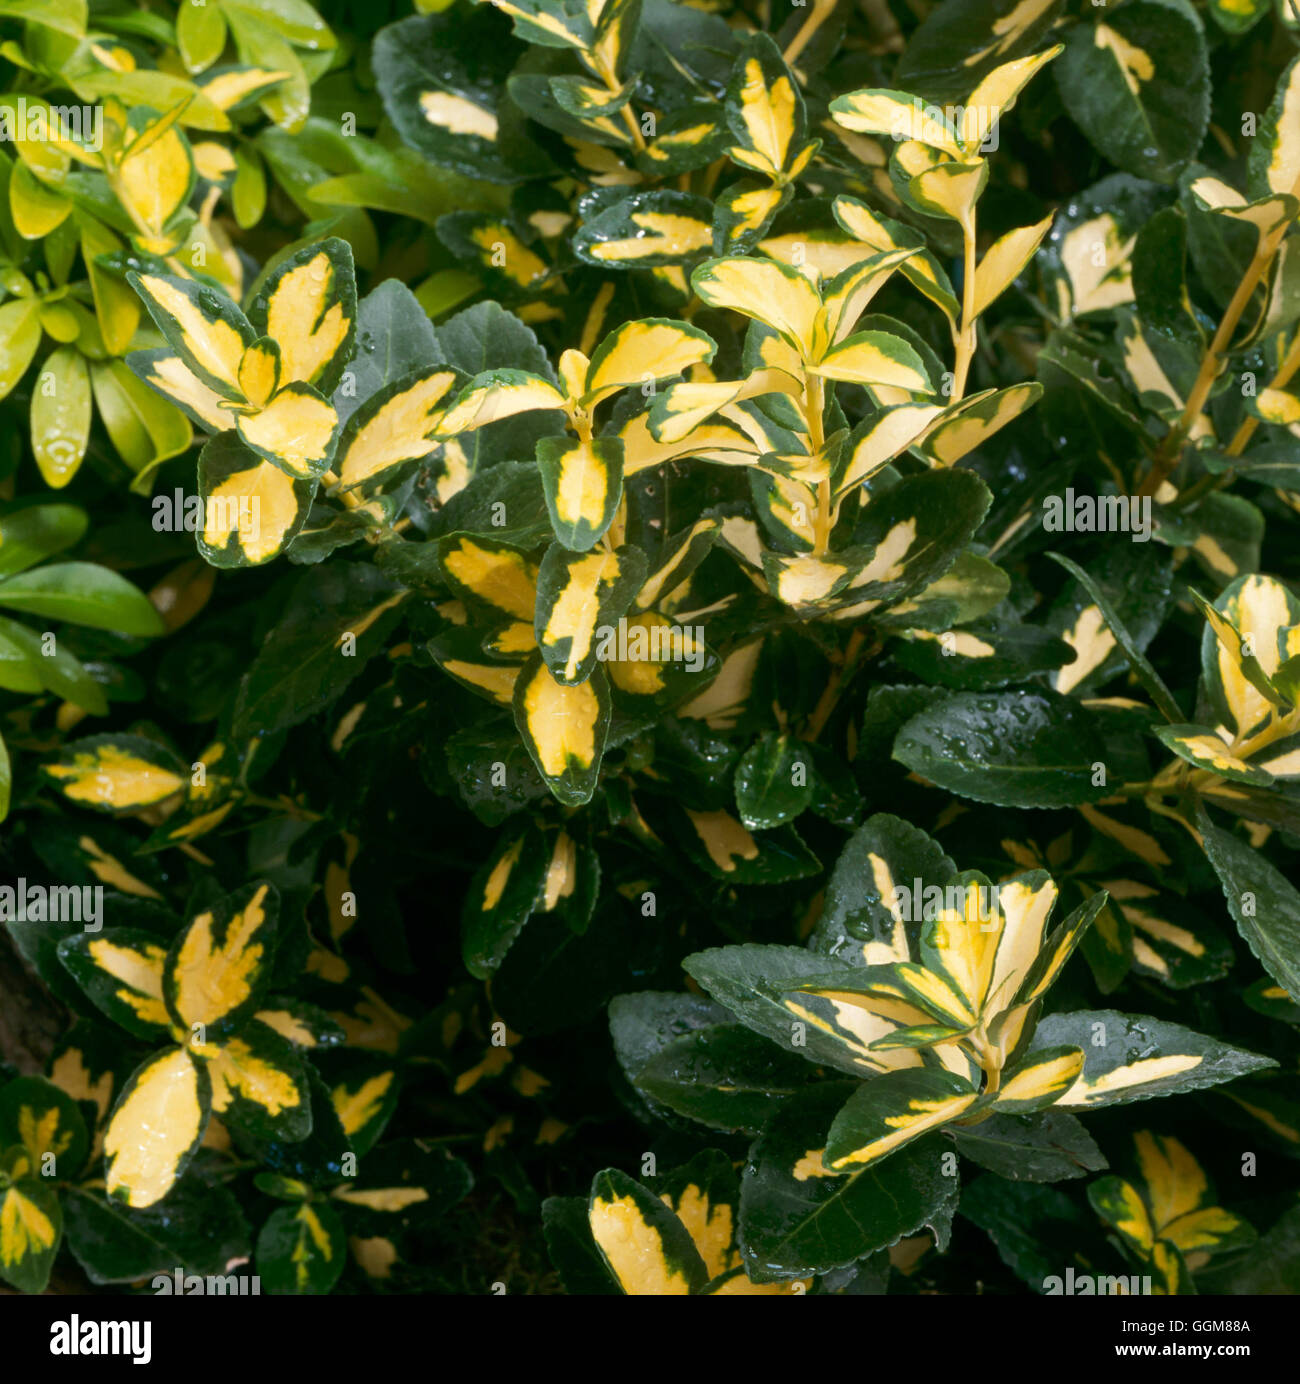 Euonymus fortunei - 'Blondy'   TRS085068 - Stock Image